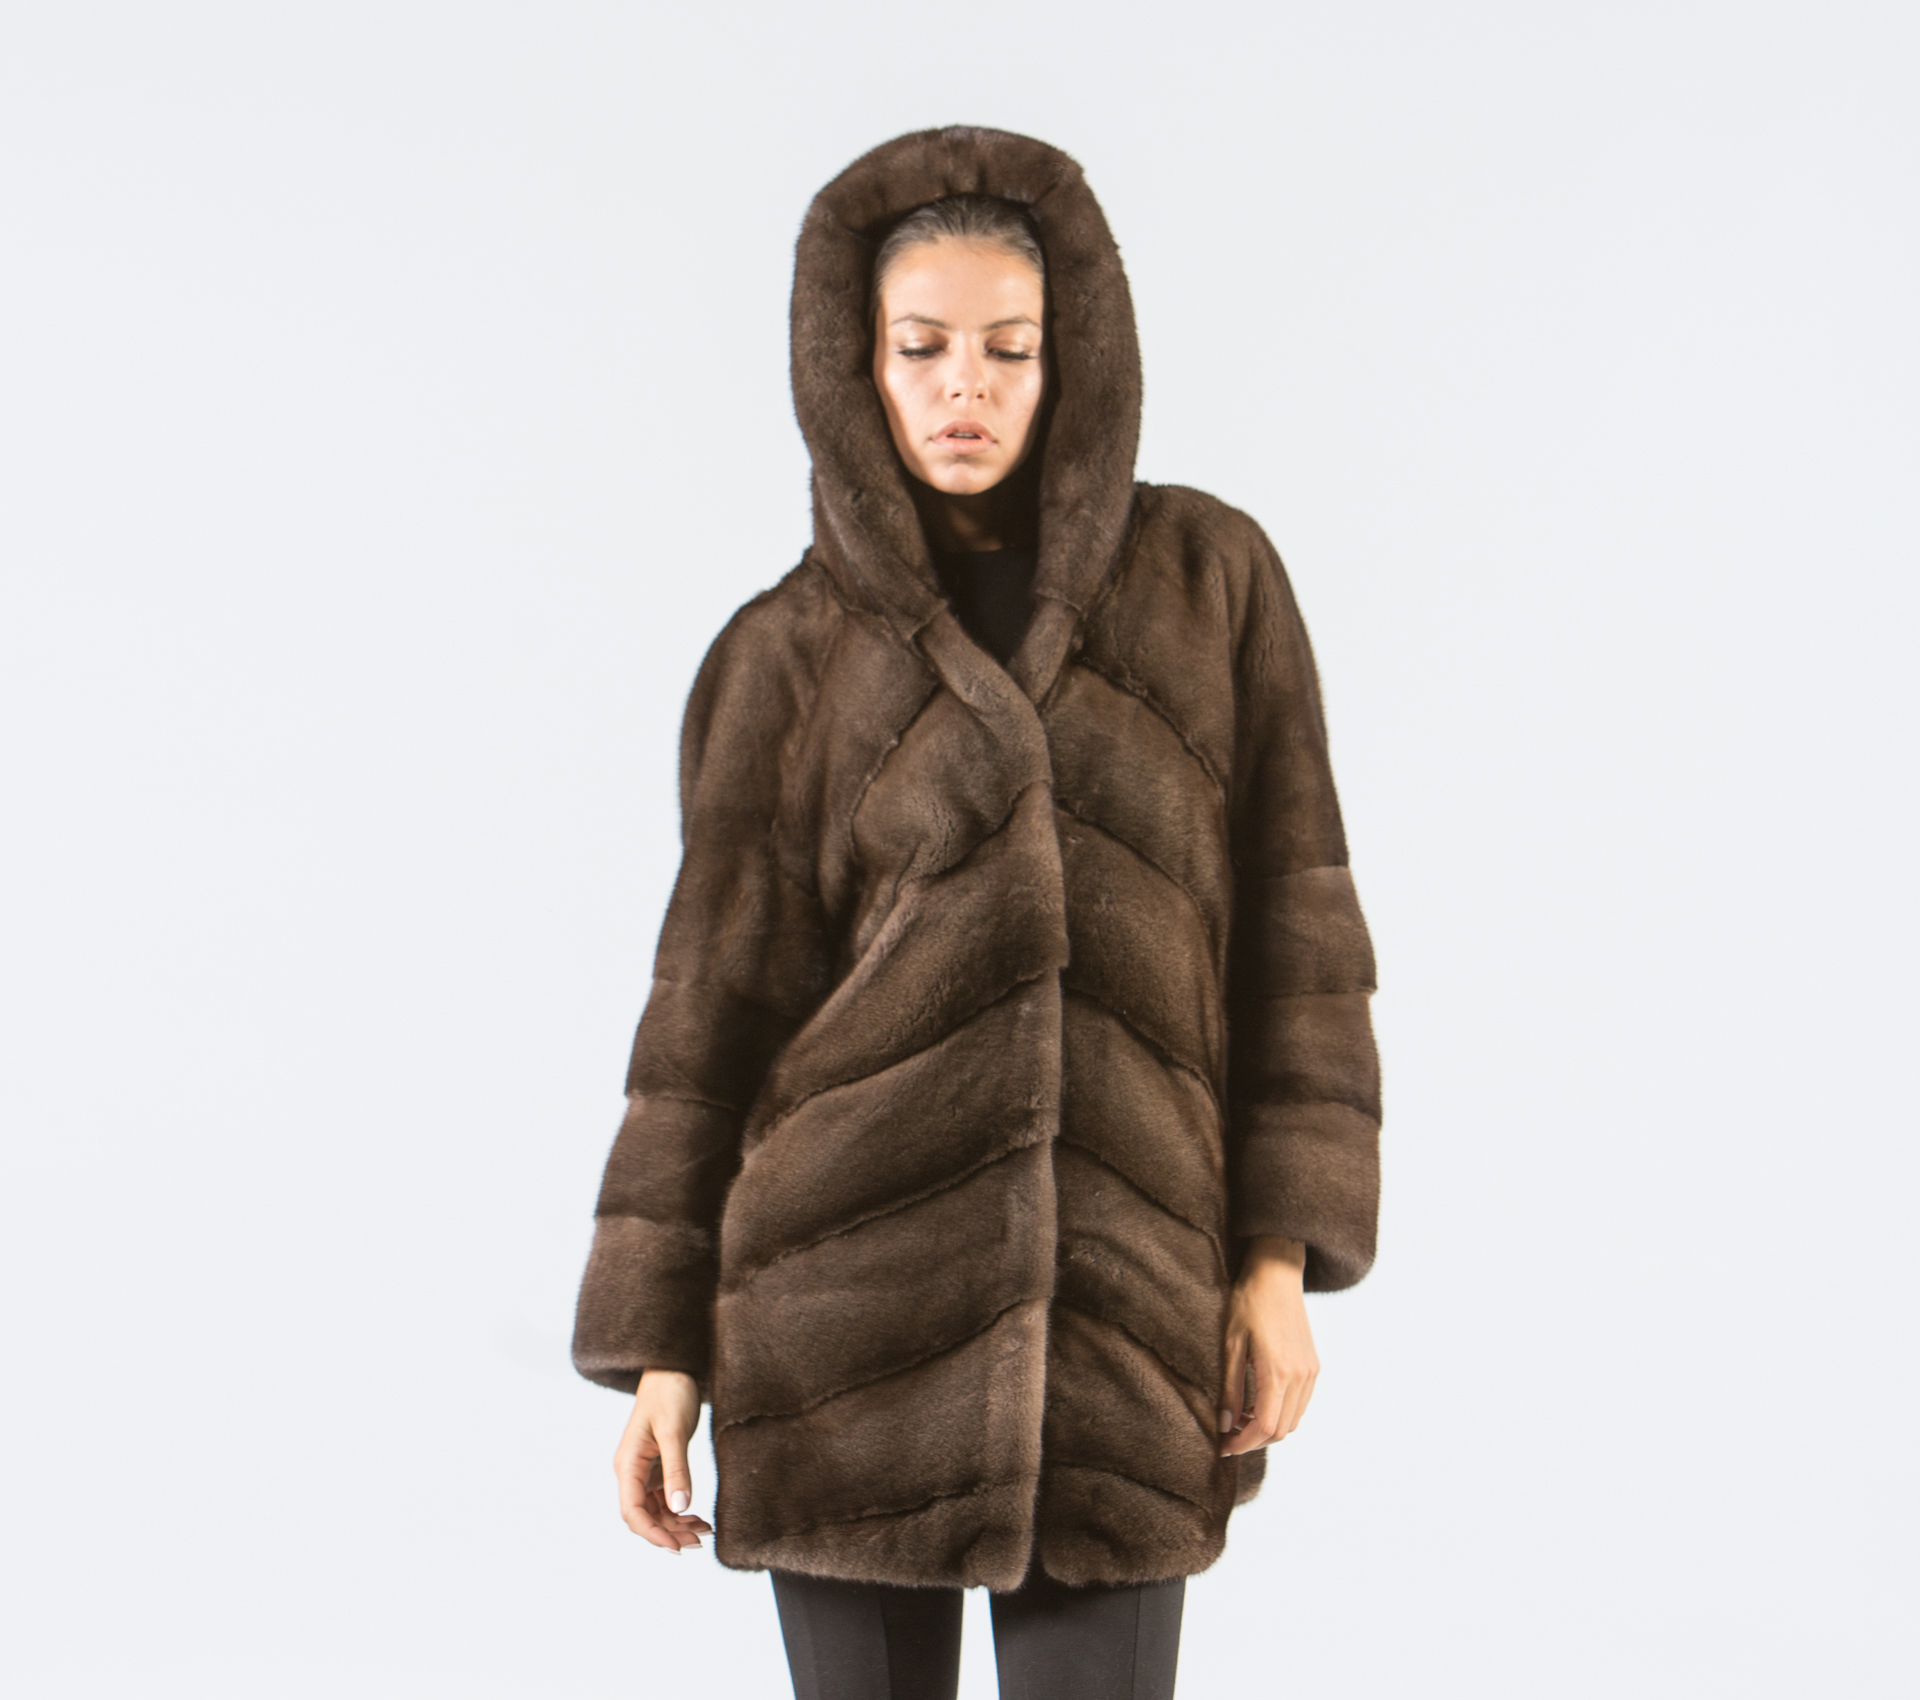 Color is brown. Front of coat has 2 small snap breast pockets, 2 large snap pockets at the bottom and 2 vertical zip pockets between the snap pockets. Includes removable zip on fur collar and permanent hood.